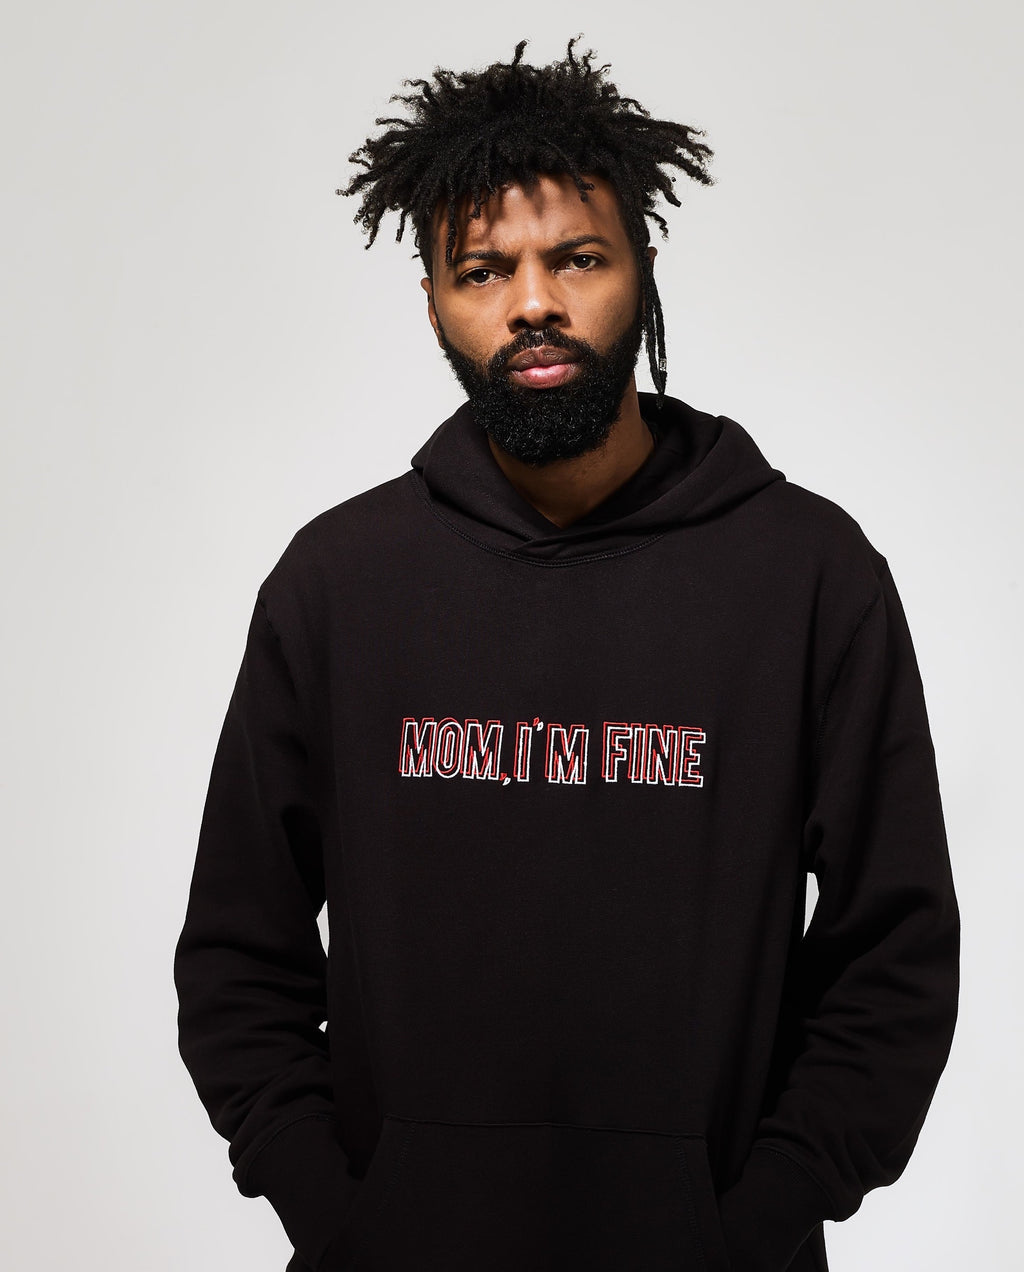 MOM, I'M FINE - BLACK HOODY